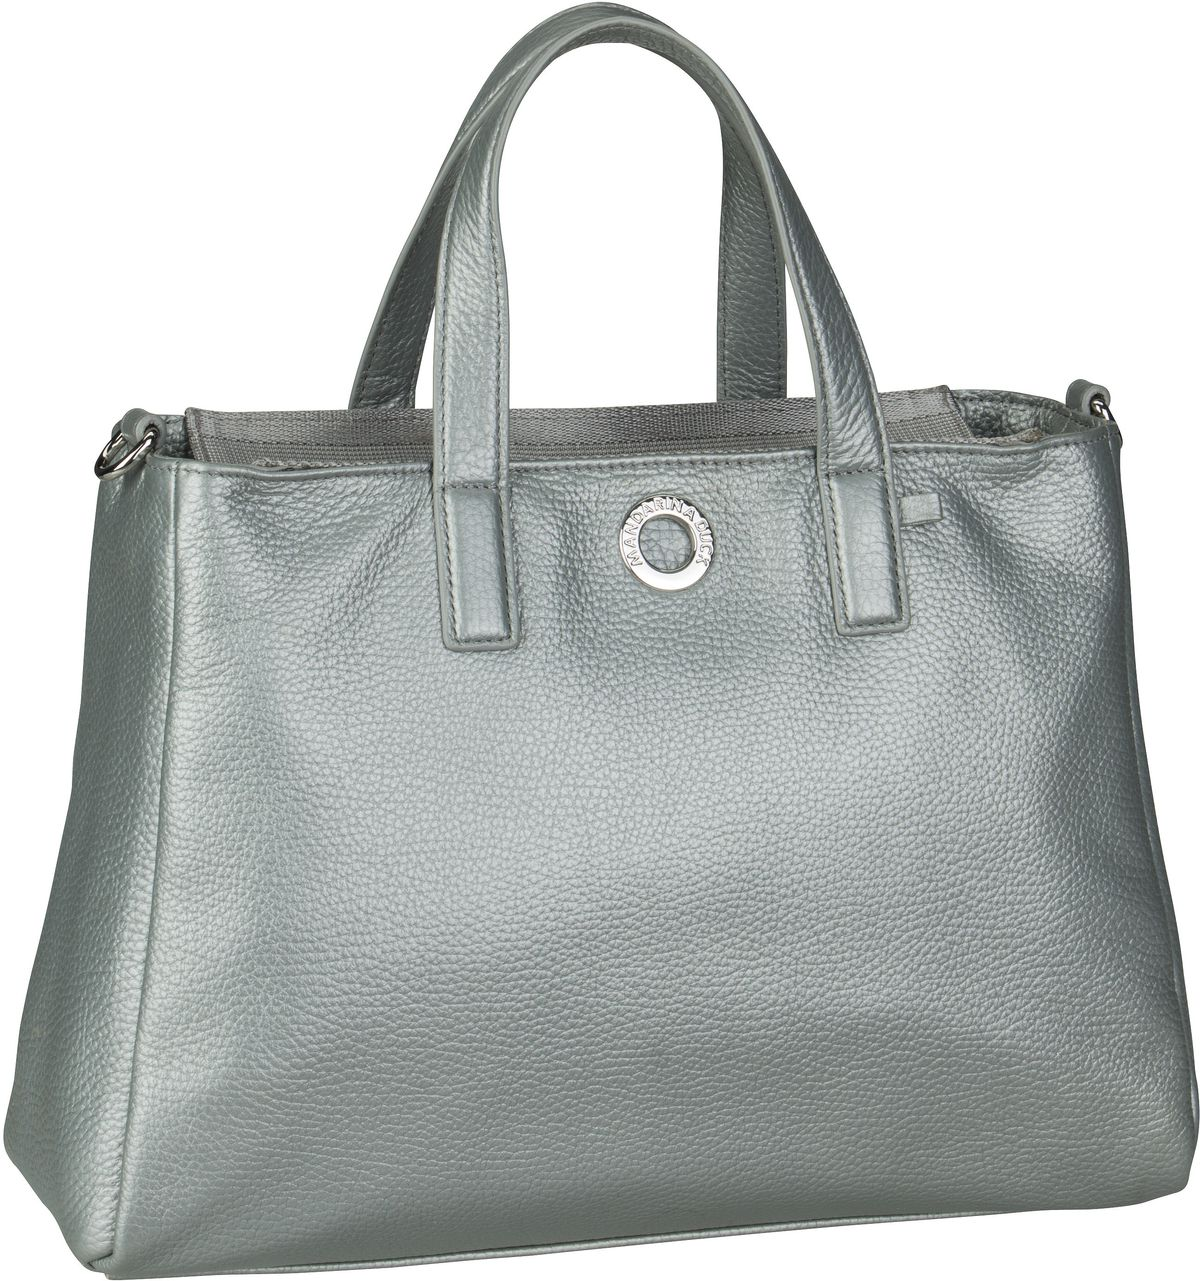 Handtasche Mellow Leather Lux Tote Bag ZLT26 Silver